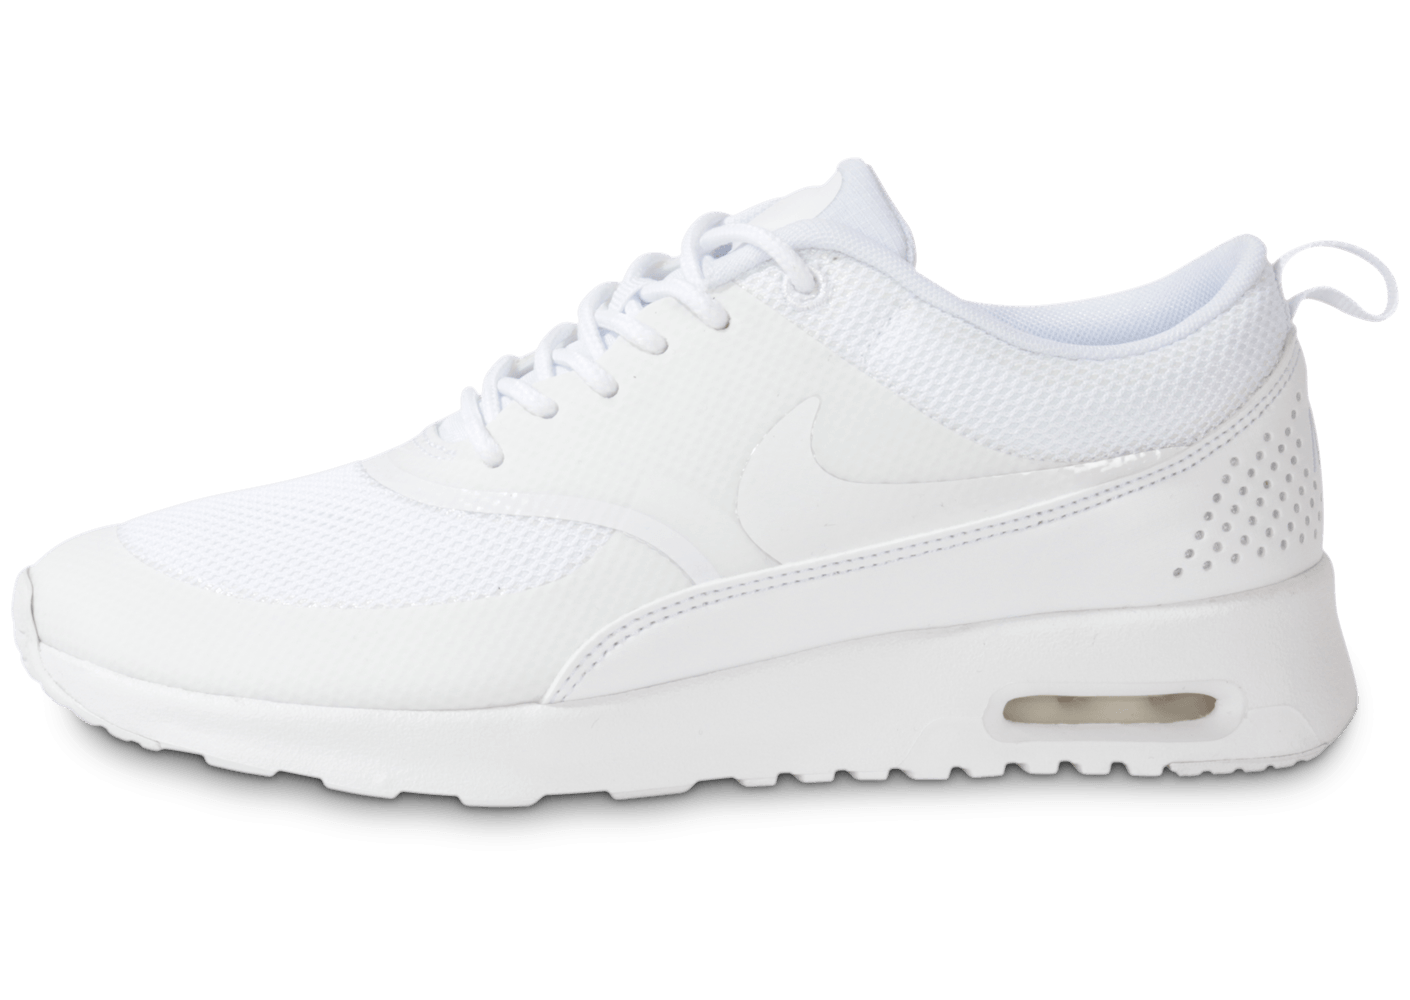 nike air max thea triple blanc chaussures chaussures chausport. Black Bedroom Furniture Sets. Home Design Ideas